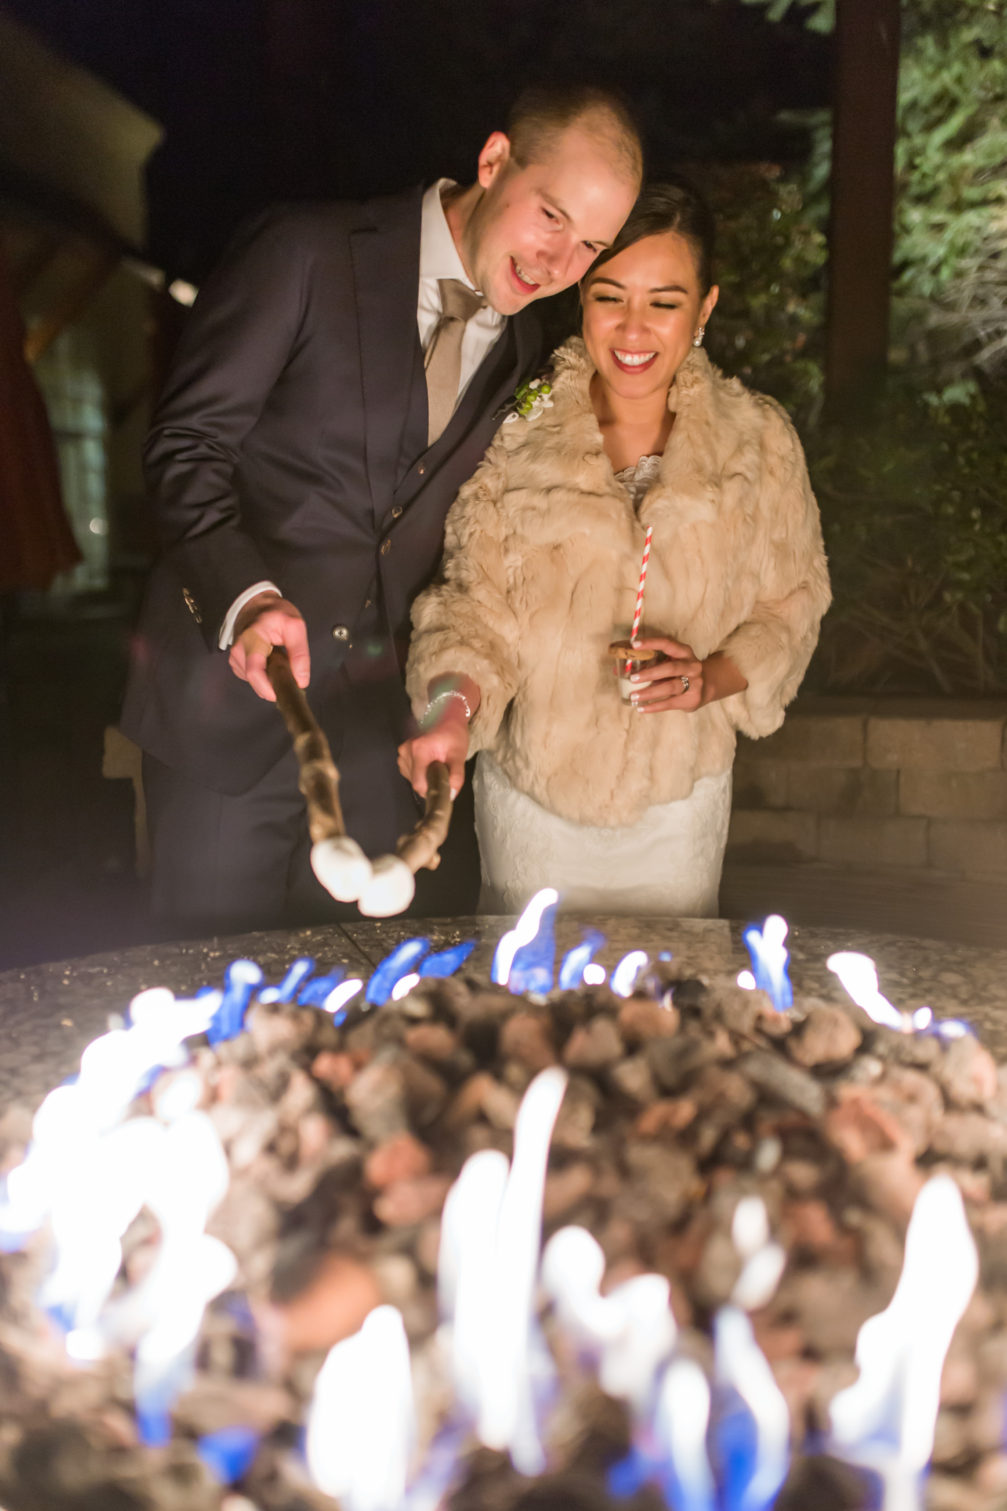 bride and groom roasting smores